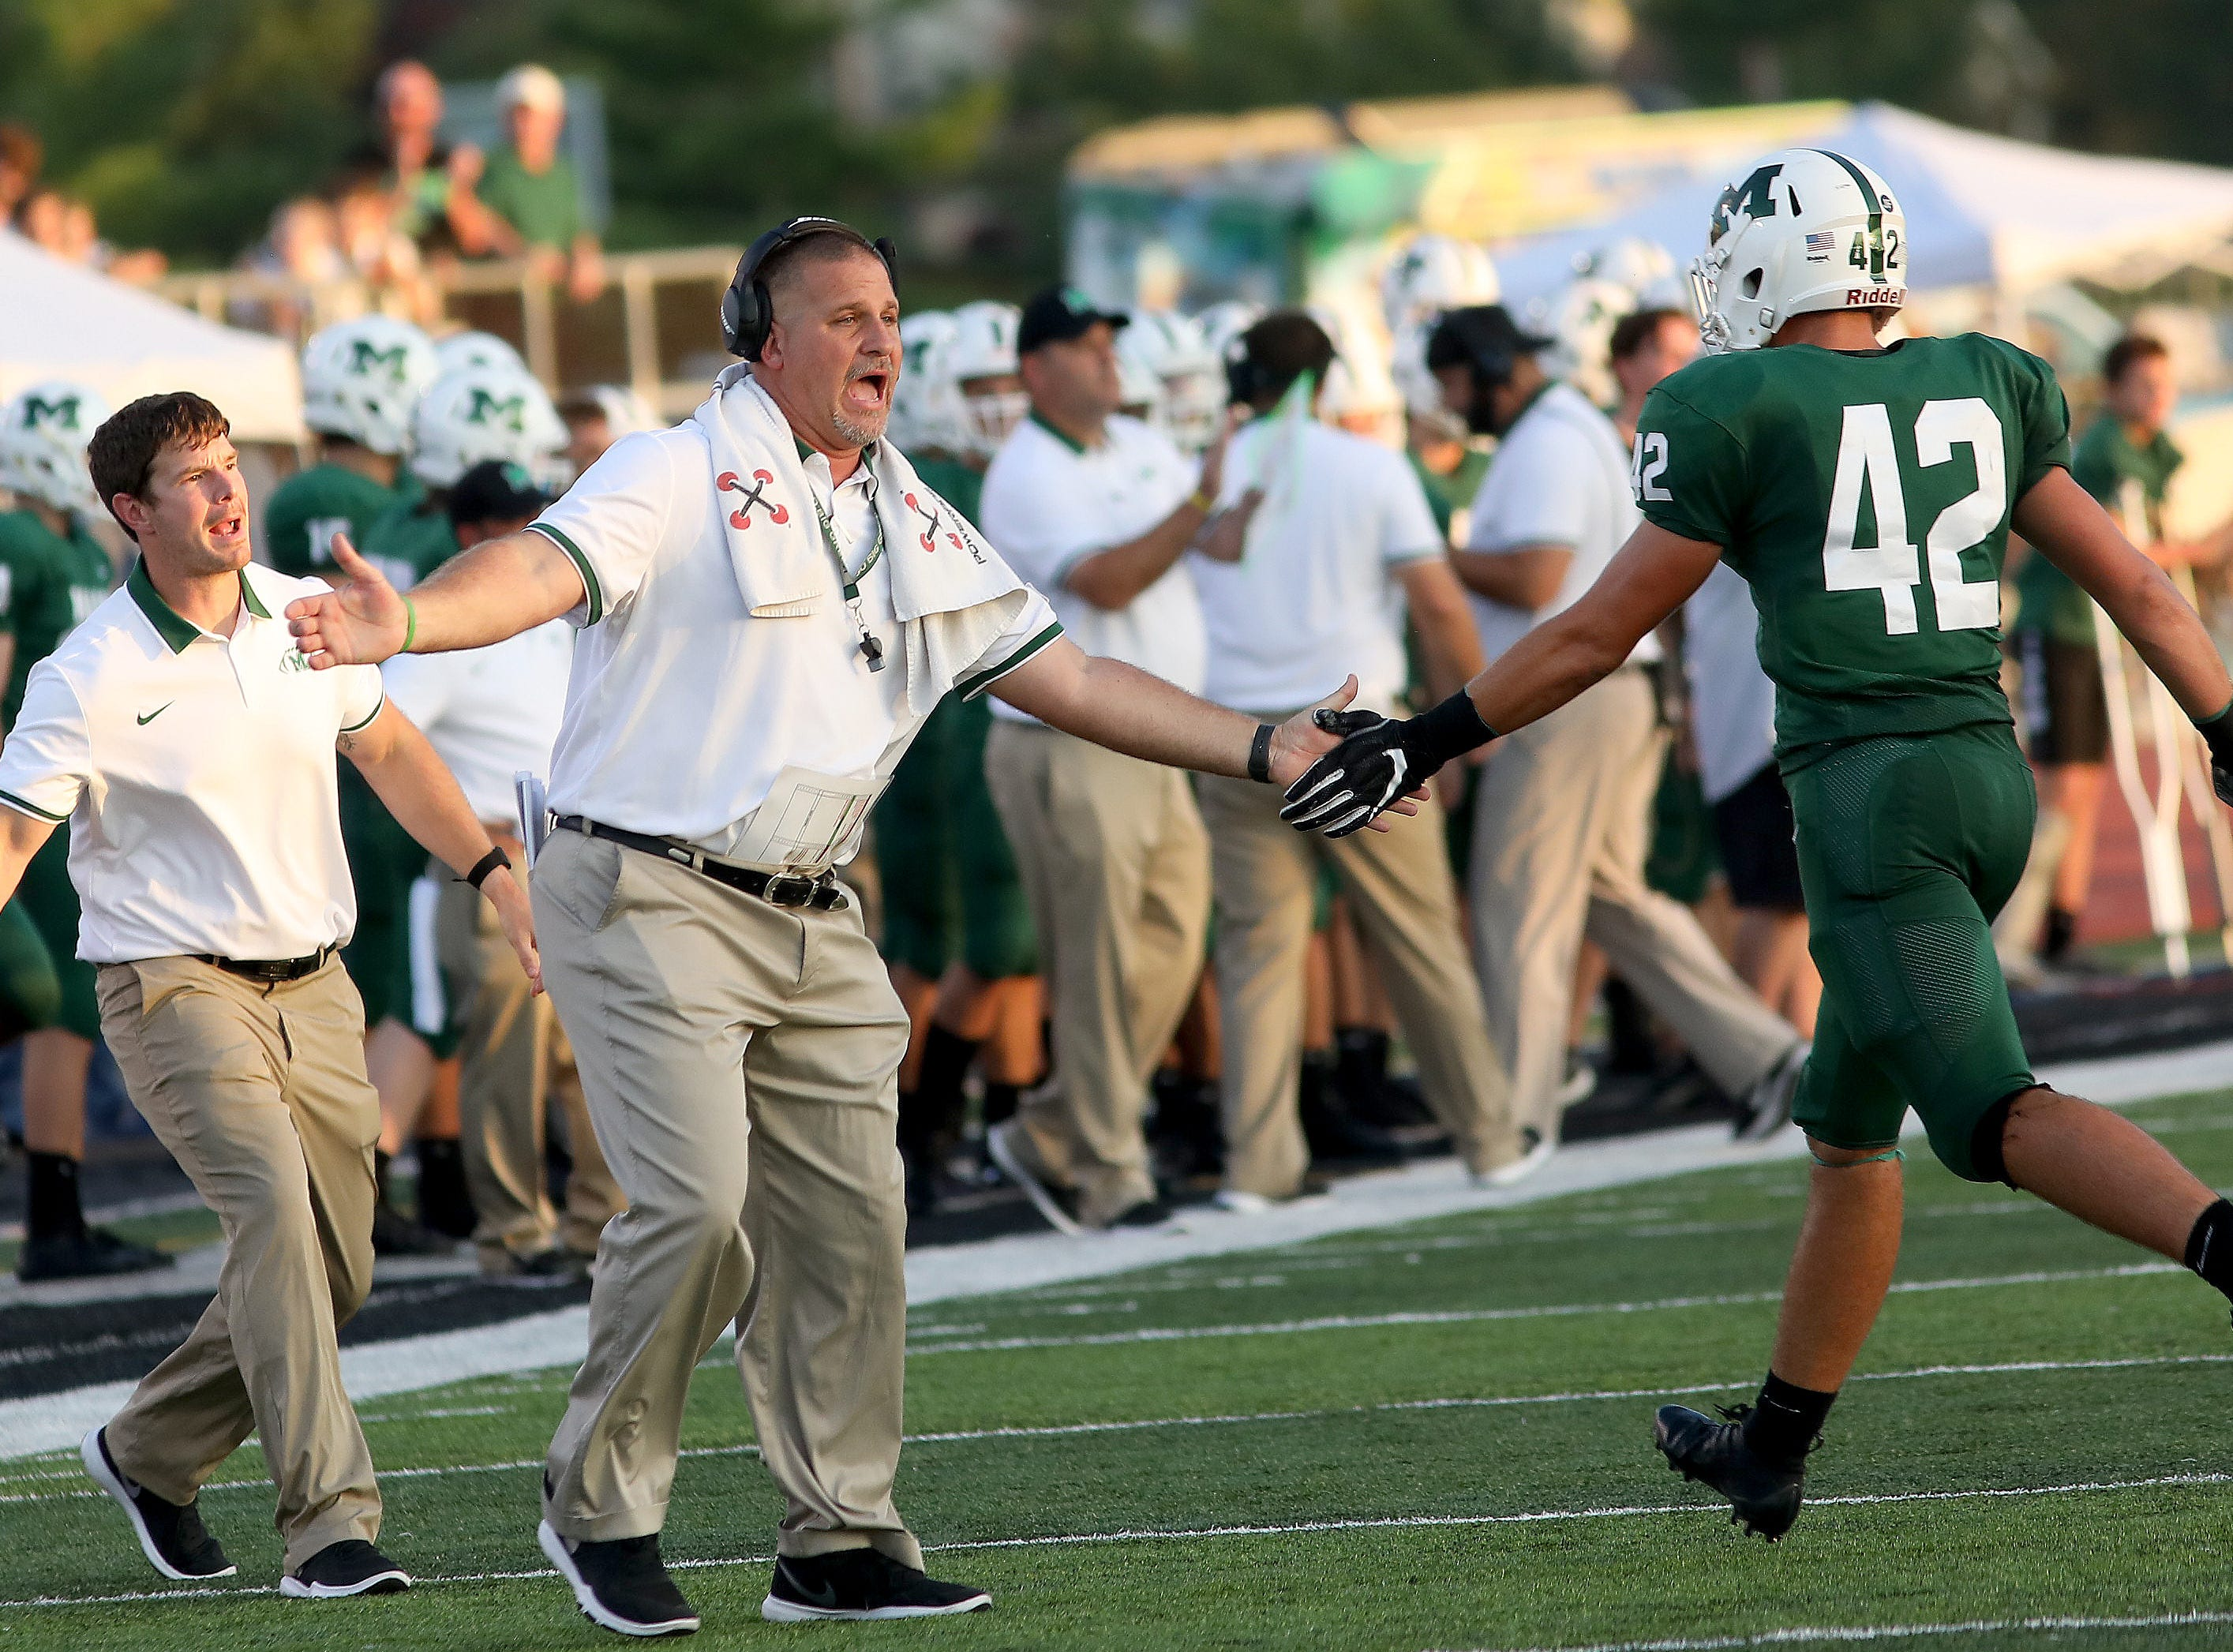 Mason head coach Brian Castner celebrates with his team during  the Comets' football game against Sycamore, Friday, Sept. 14, 2018.